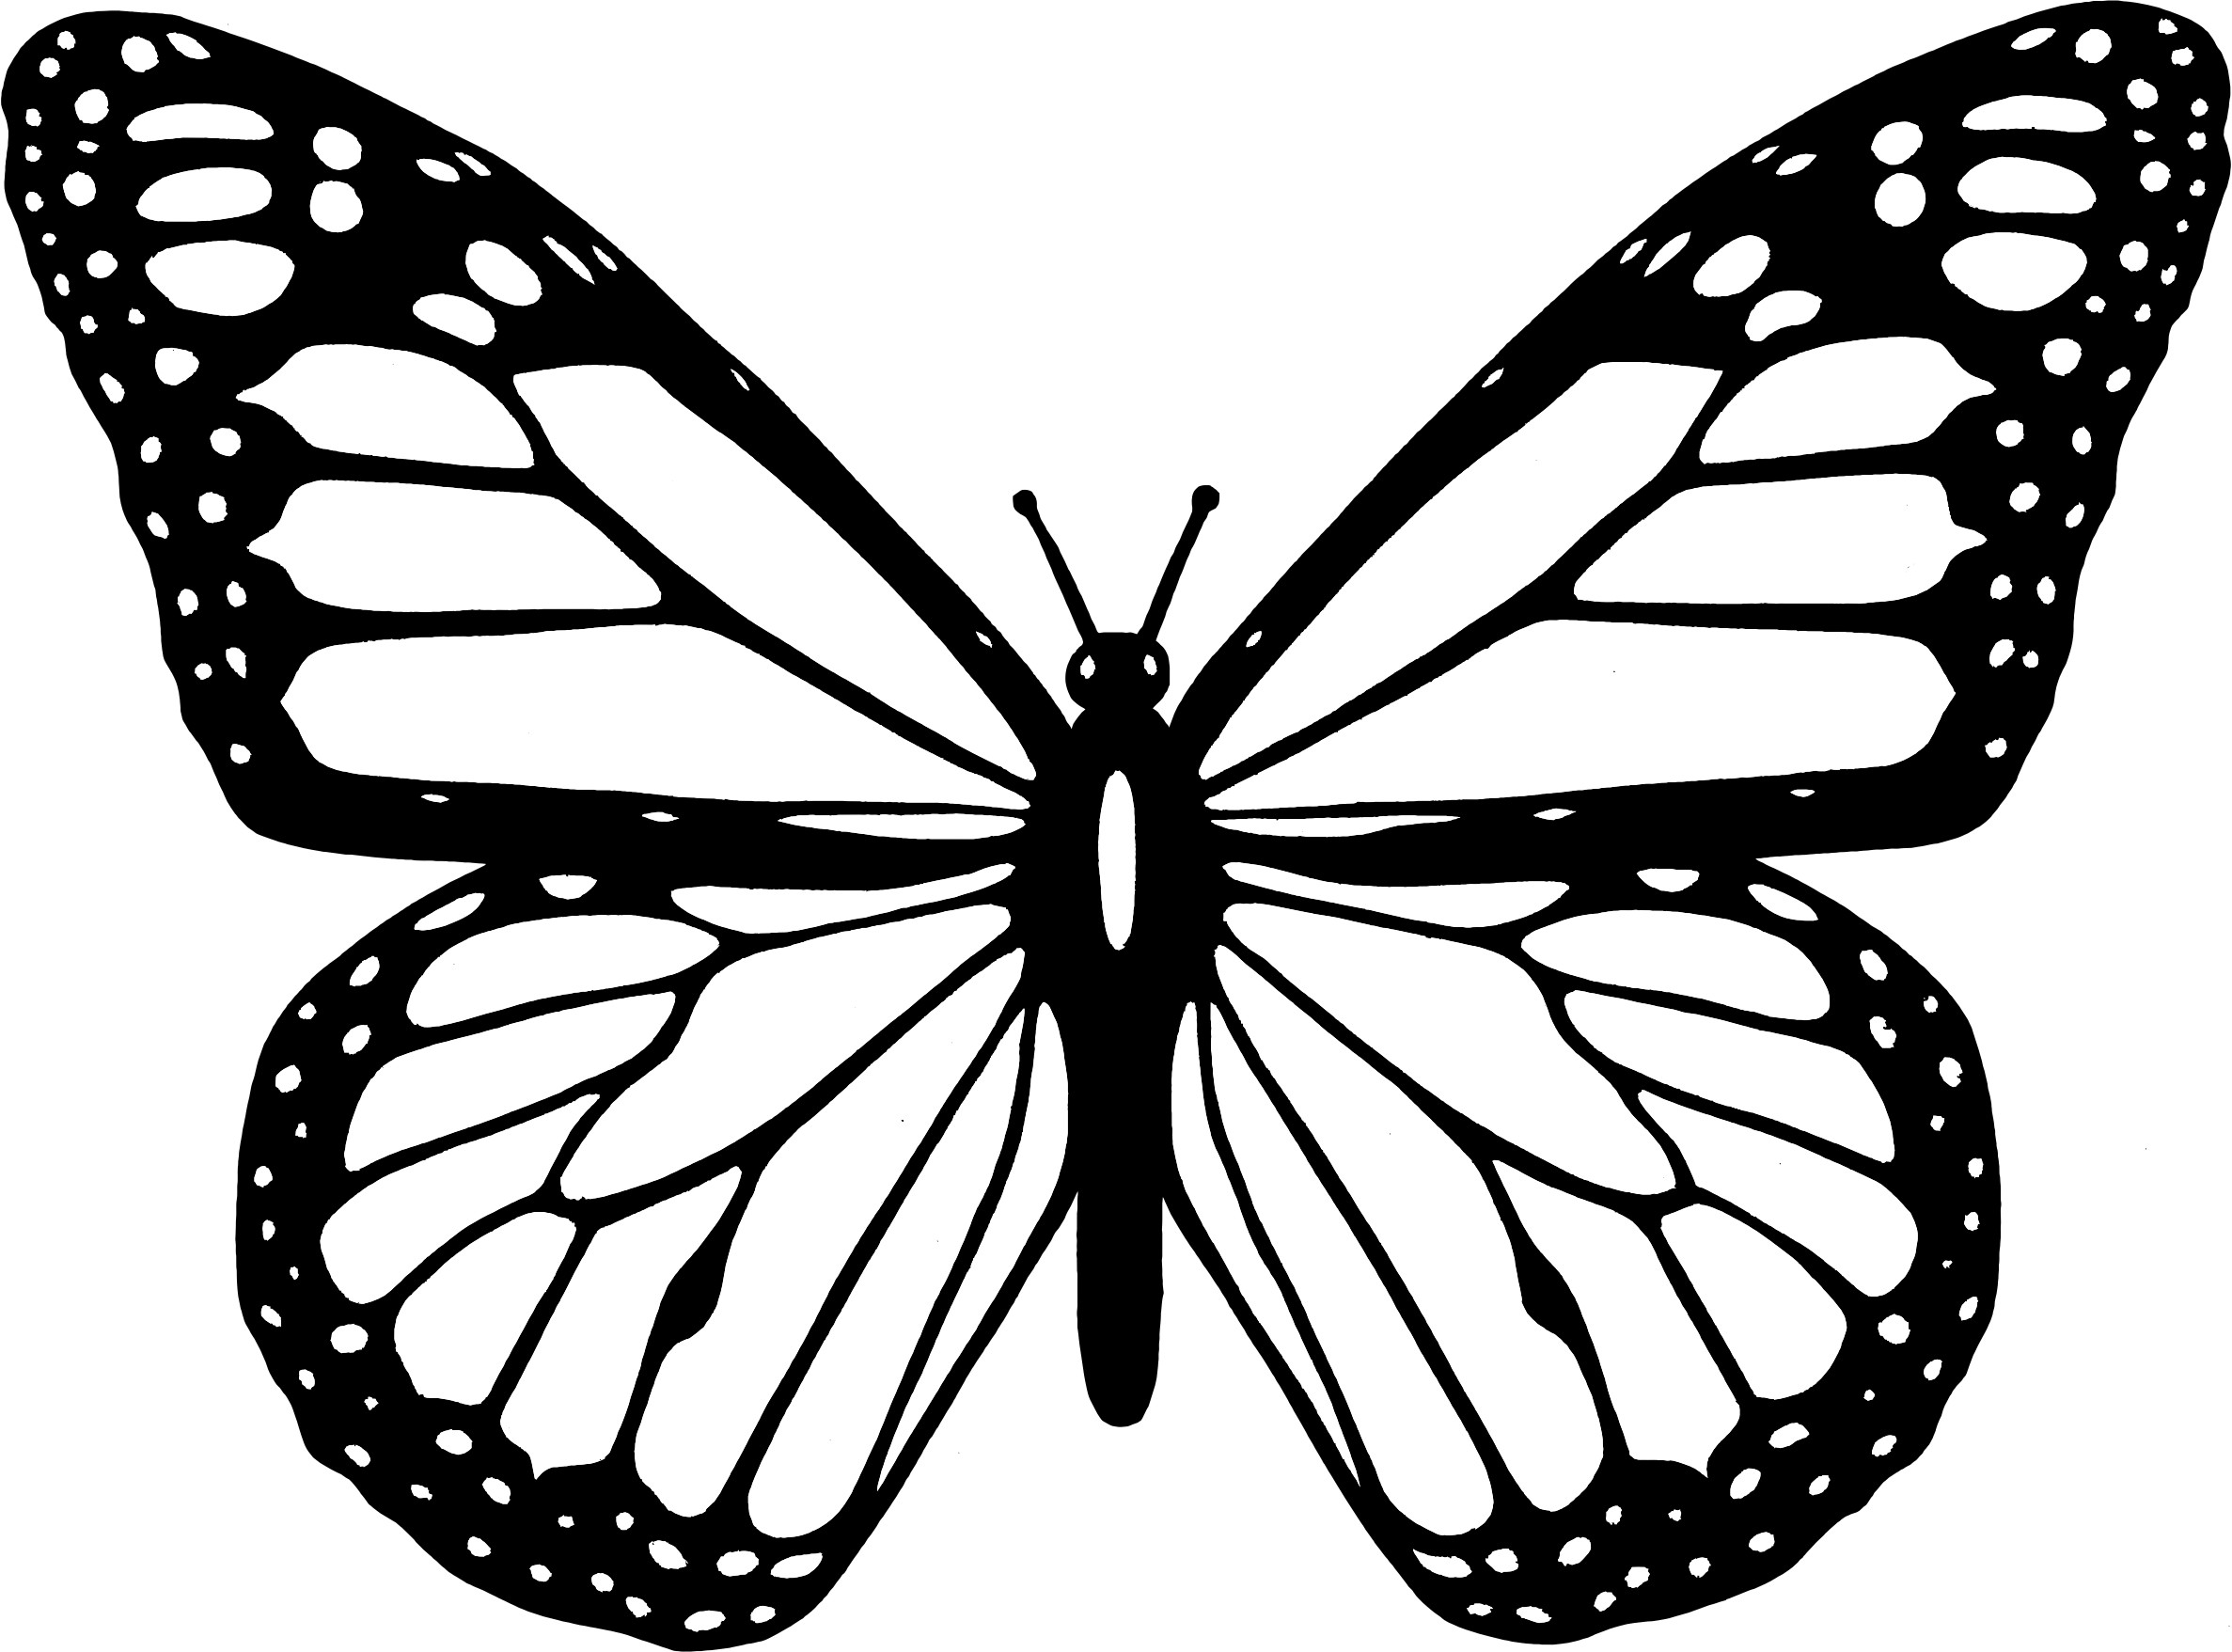 butterfly coloring sheet printable monarch butterfly coloring pages download and print for free butterfly sheet coloring printable